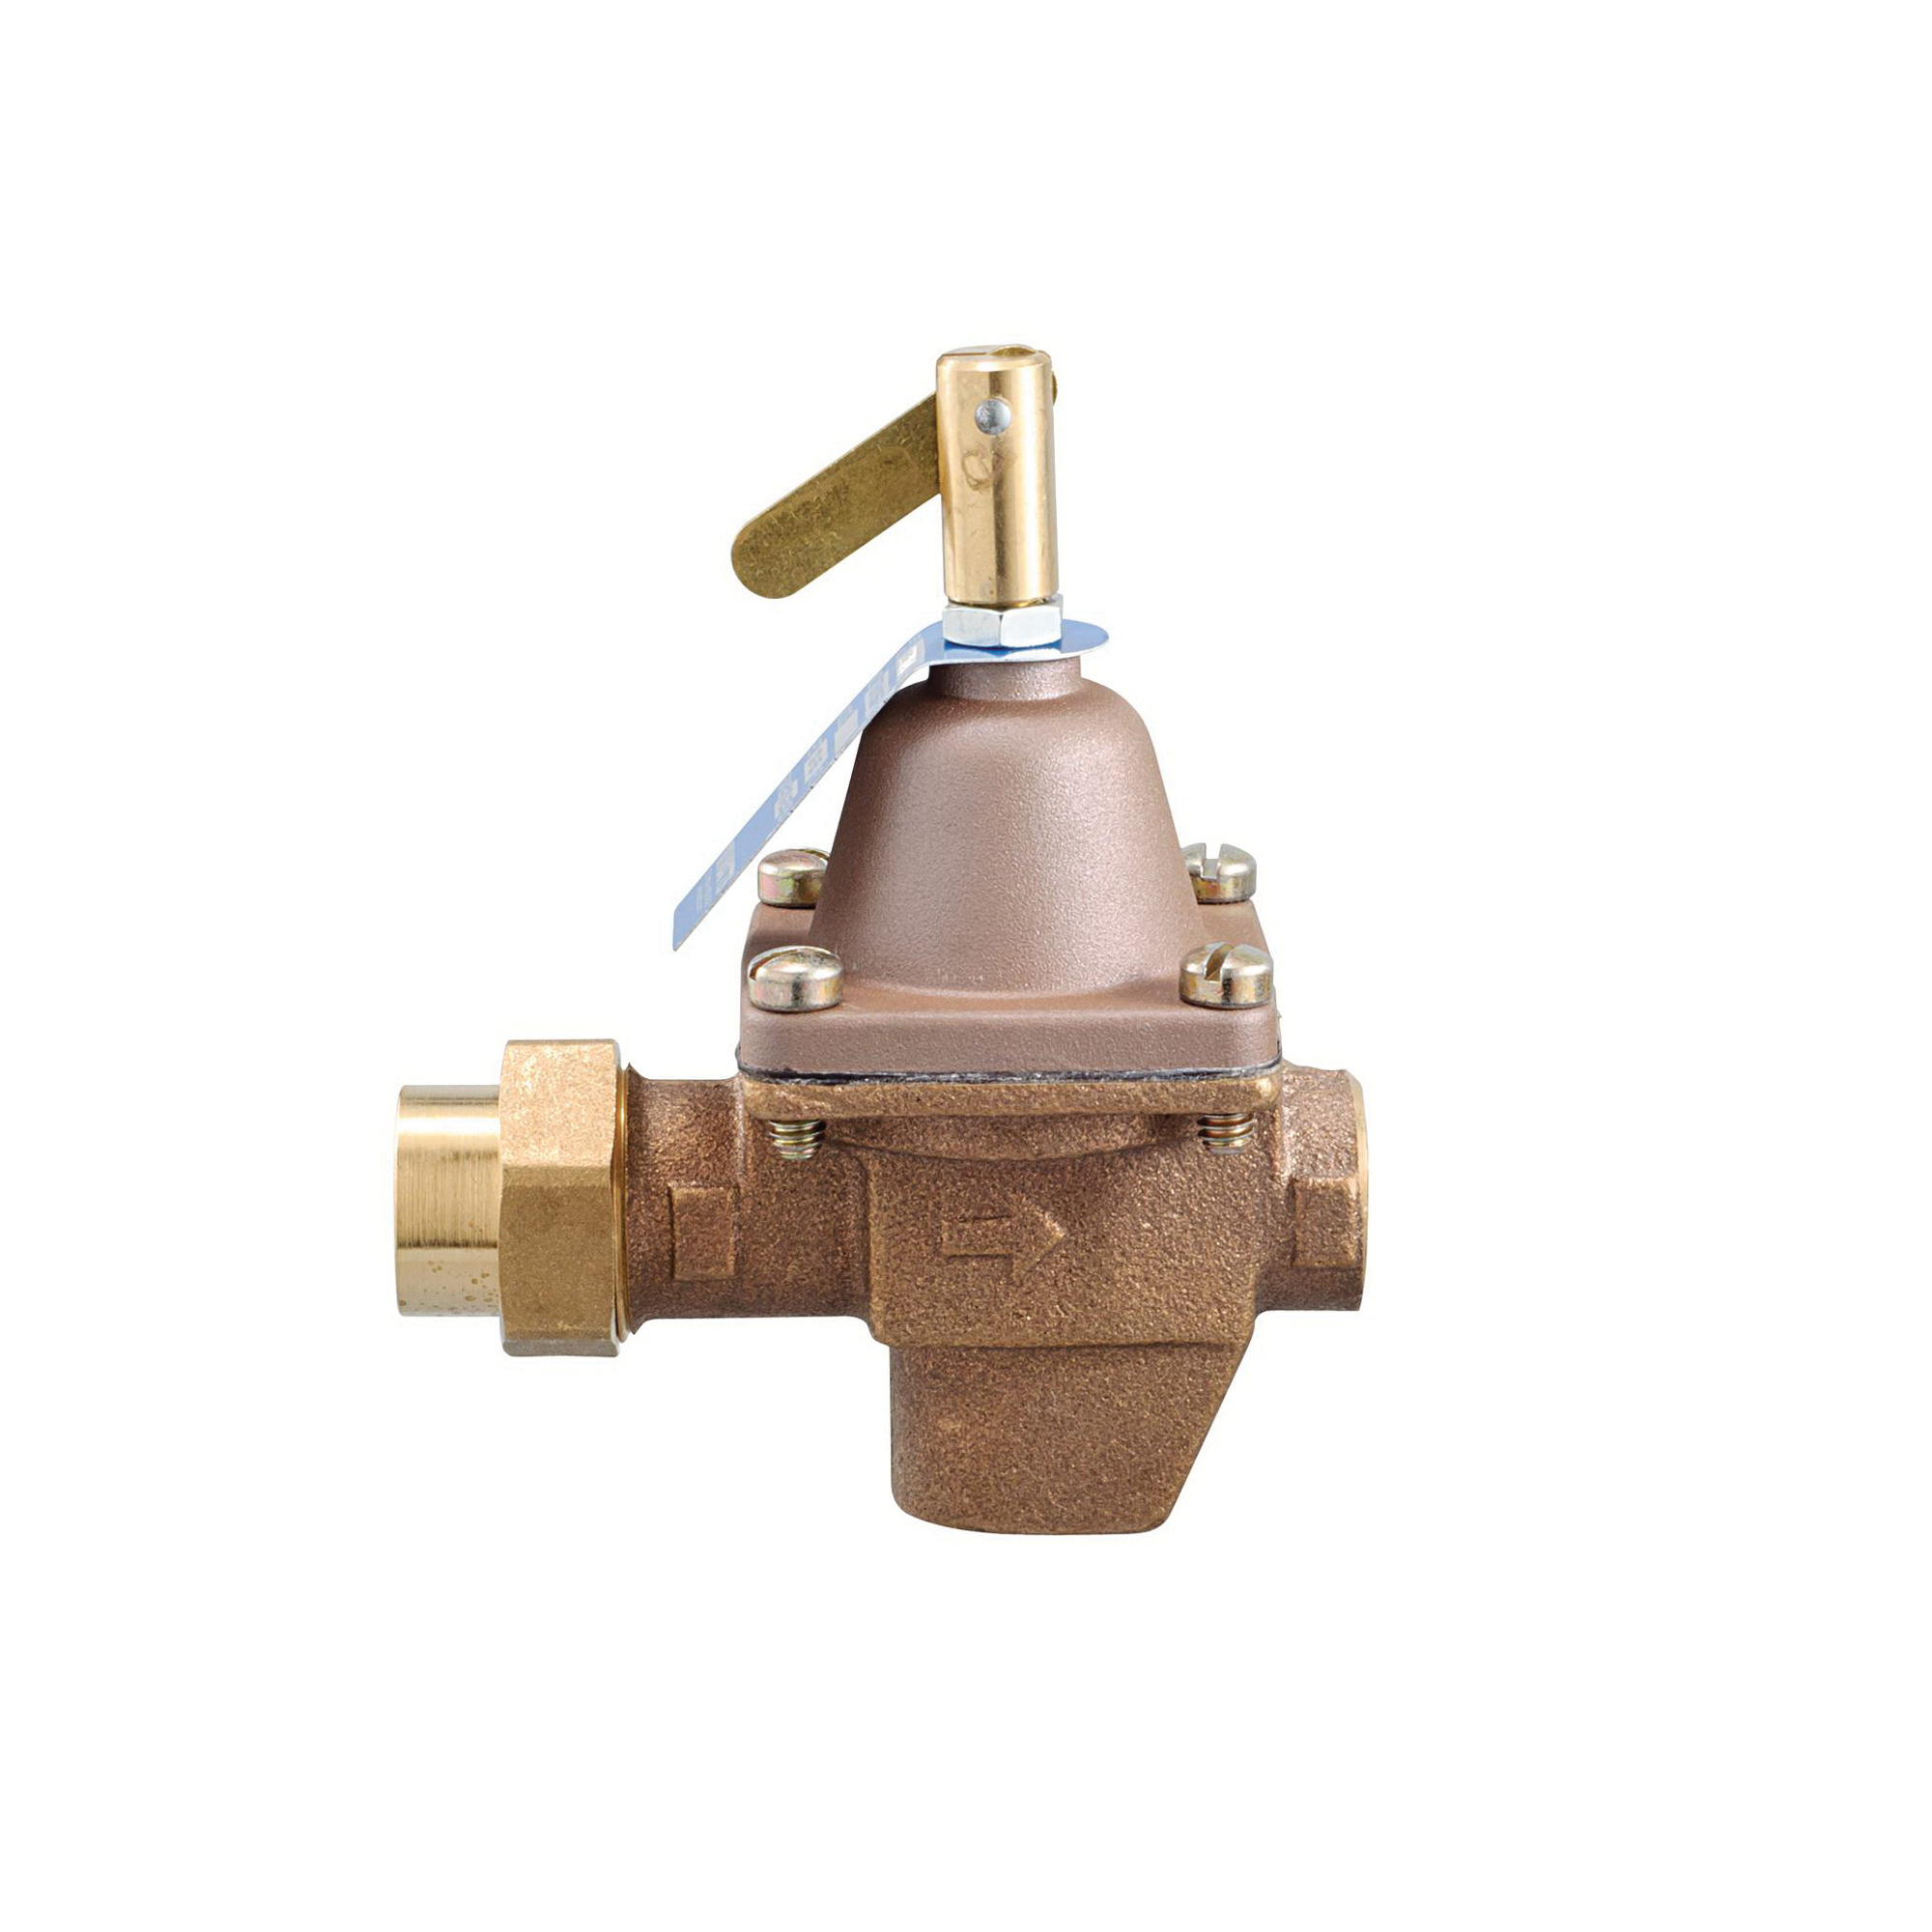 WATTS® 0386421 1156F Water Feed Regulator, 1/2 in, Union Solder Inlet, 100 psi, Bronze Body